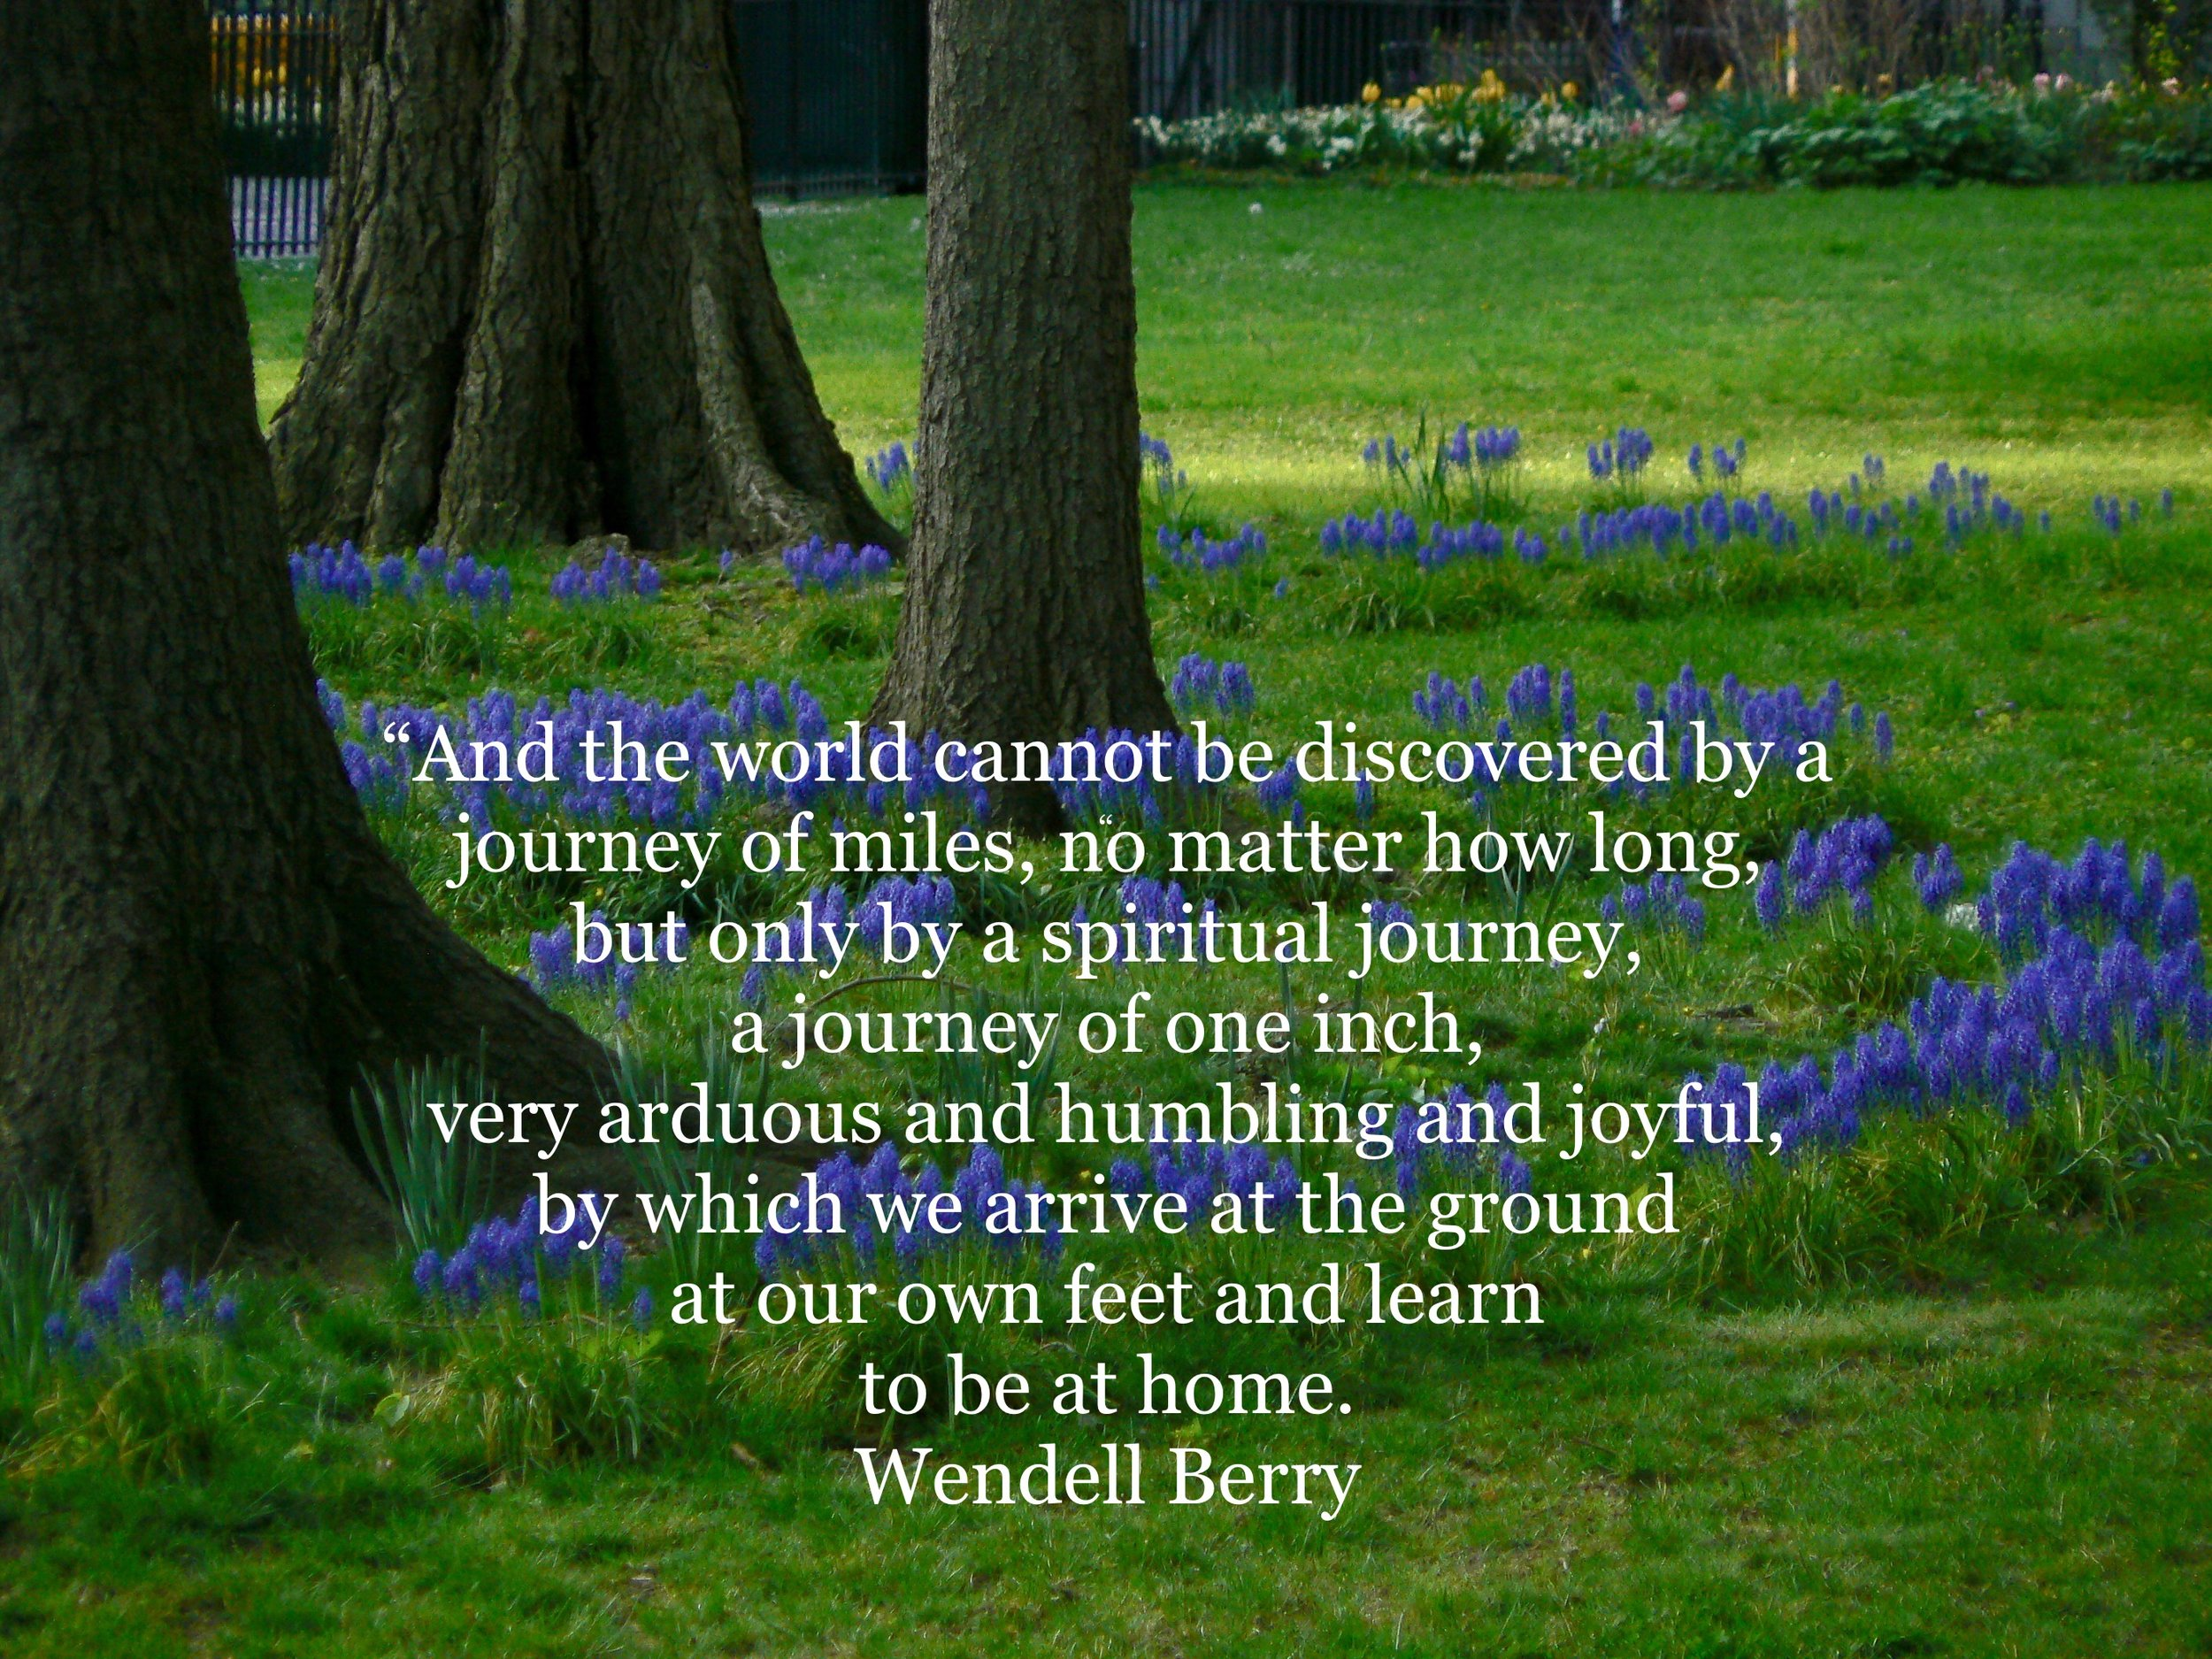 wendell berry journey.jpeg